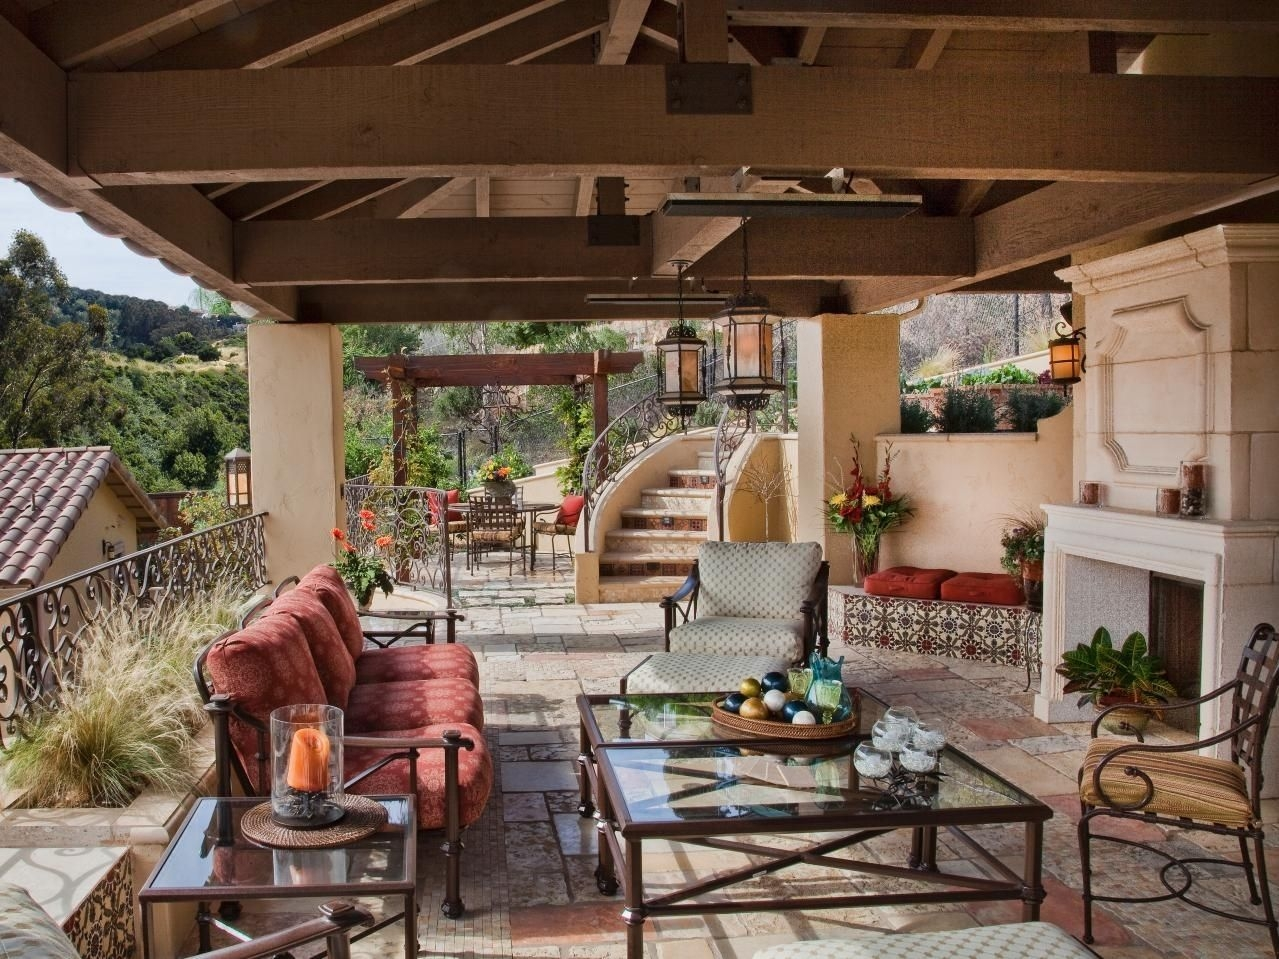 beautiful outdoor living space with a covered patio and seating area